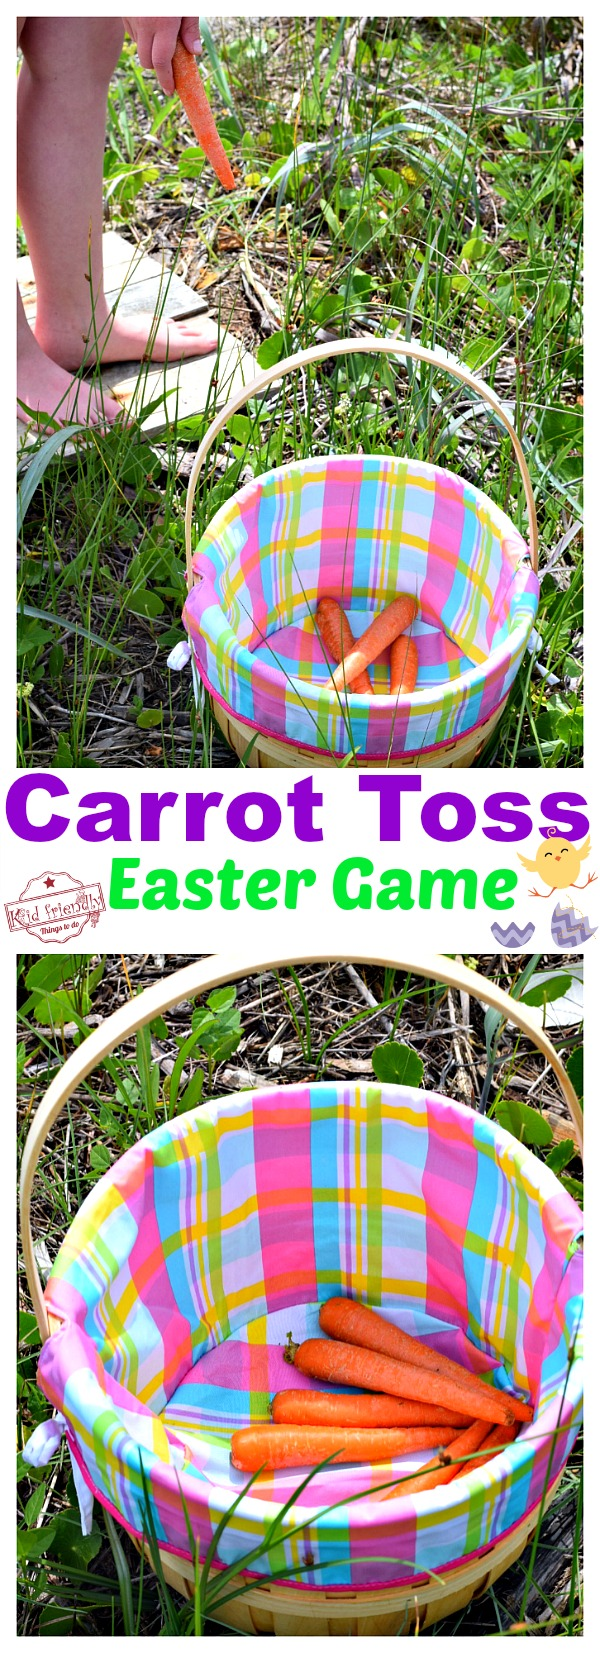 Play this fun Carrot Toss Game - An Easy Easter Game to Play and even easier to set up. It's perfect for family, kids, preschool or even church games! www.kidfriendlythingstodo.com